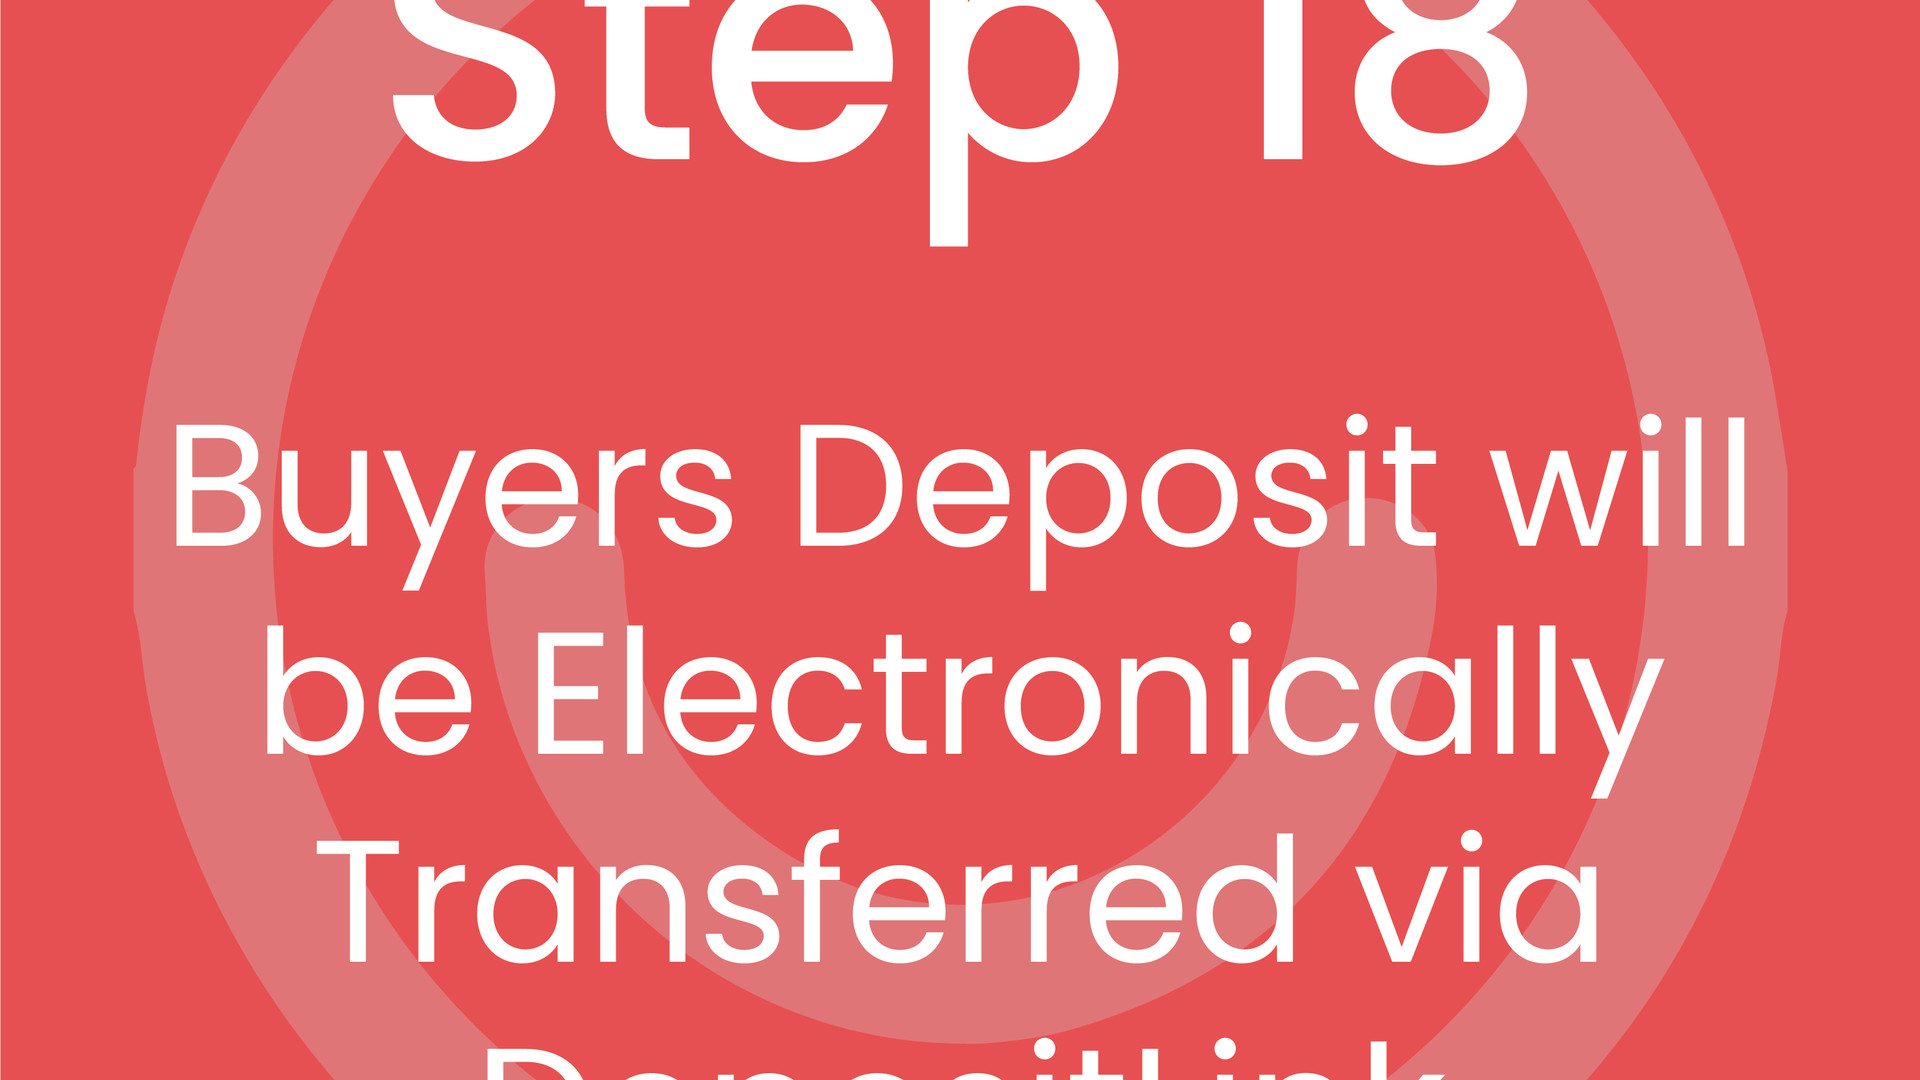 Step 18: Buyer's Deposit will be Electronically Transferred via Dotloop